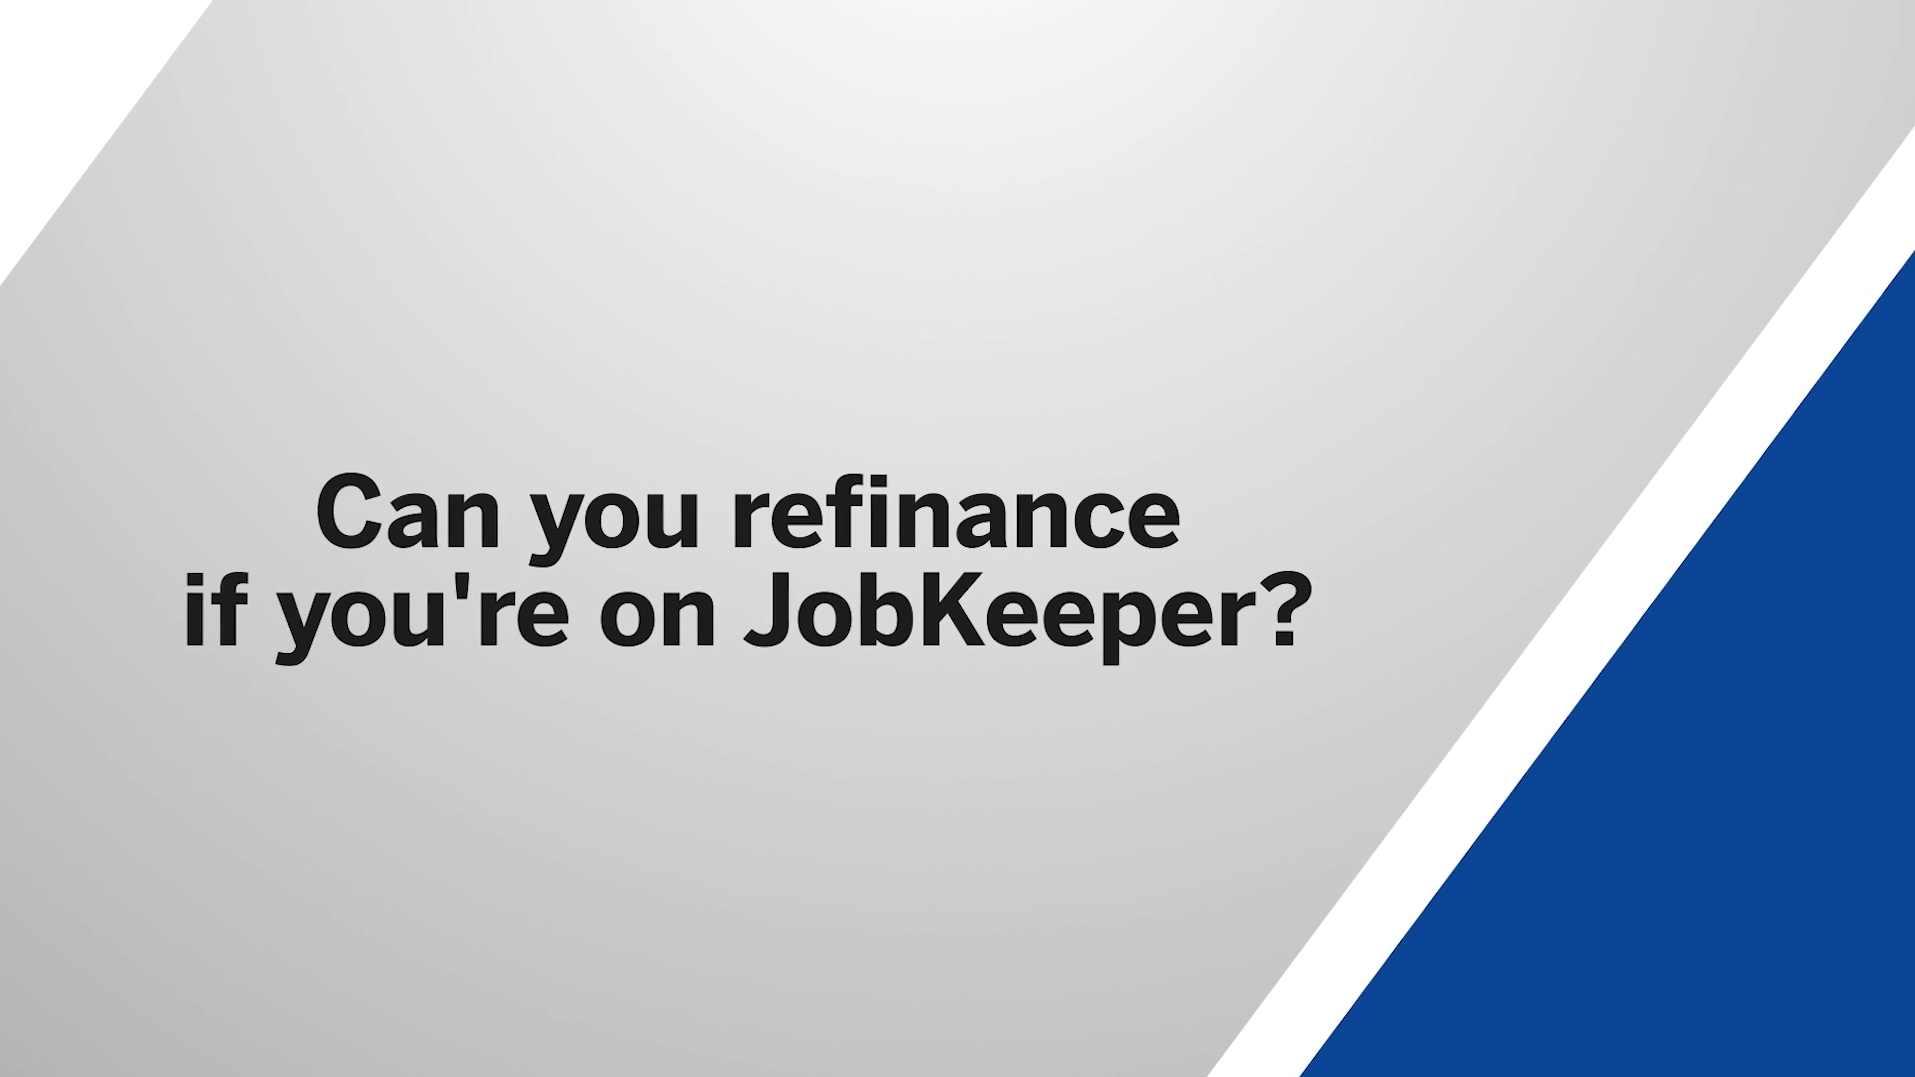 Can you refinance if you're on JobKeeper?